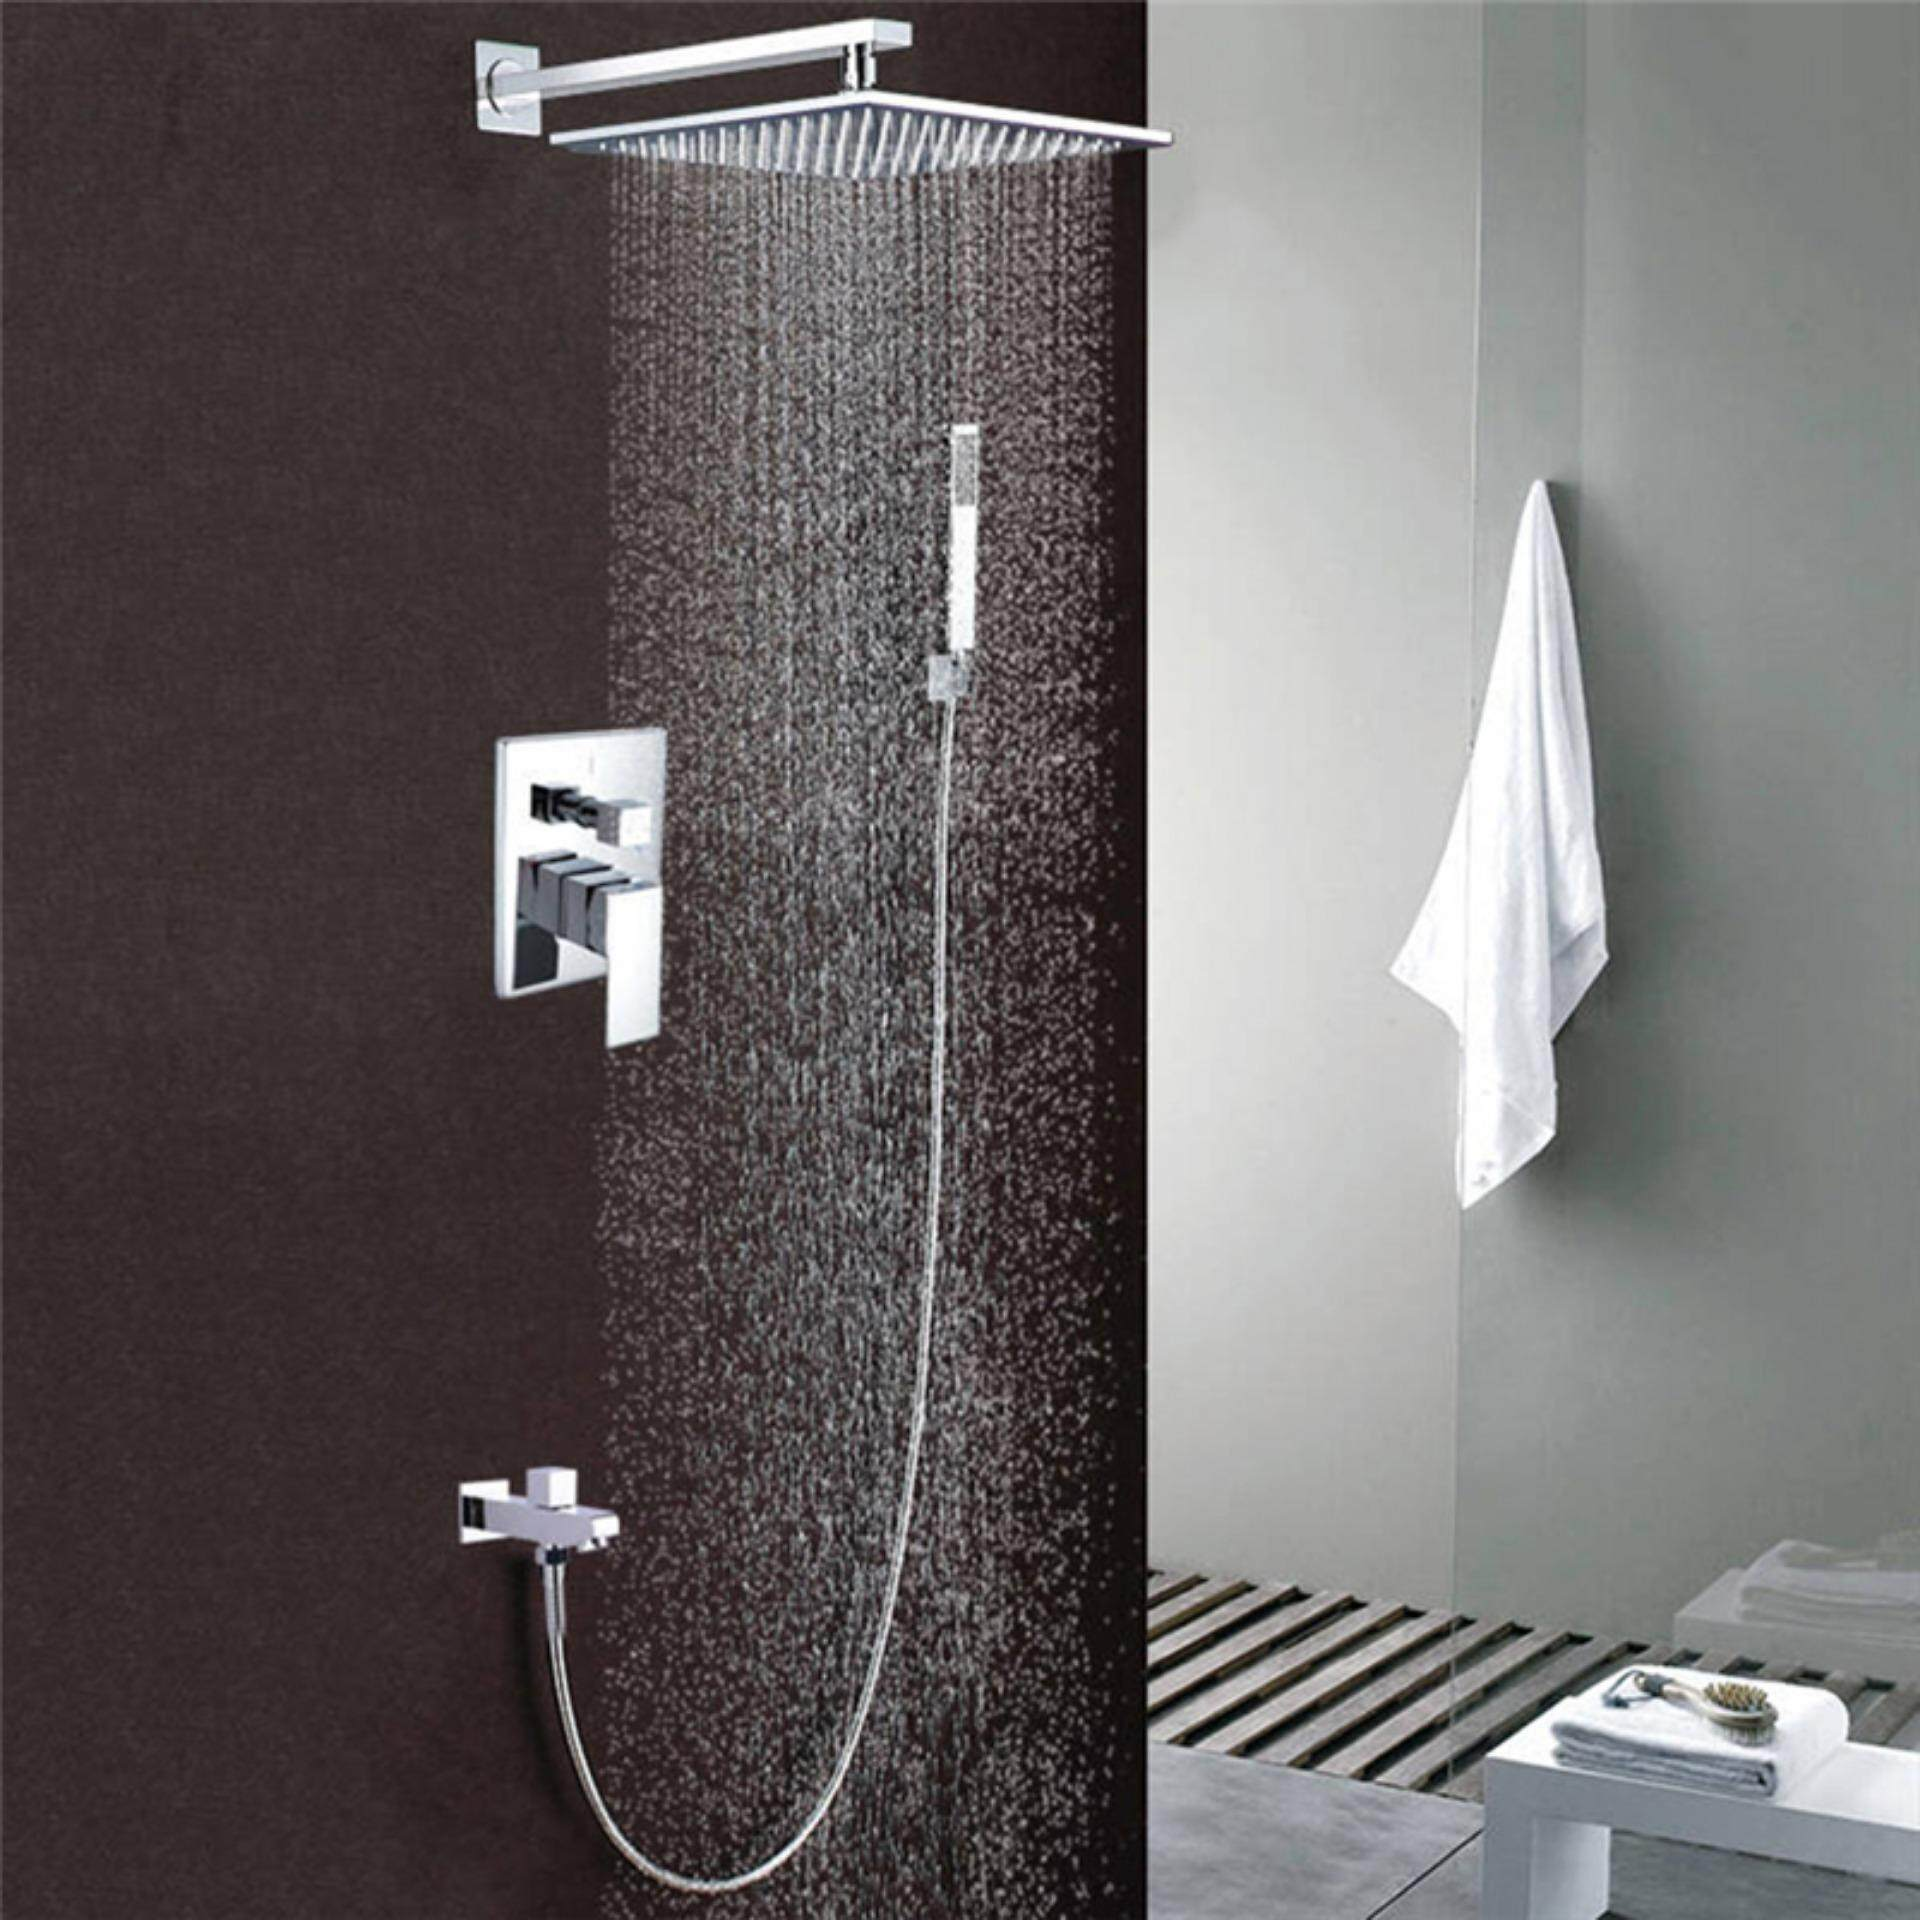 The Best Quality 8 Inch Stainless Steel Bathroom Rain Shower Faucets Head Shower Set Sliver